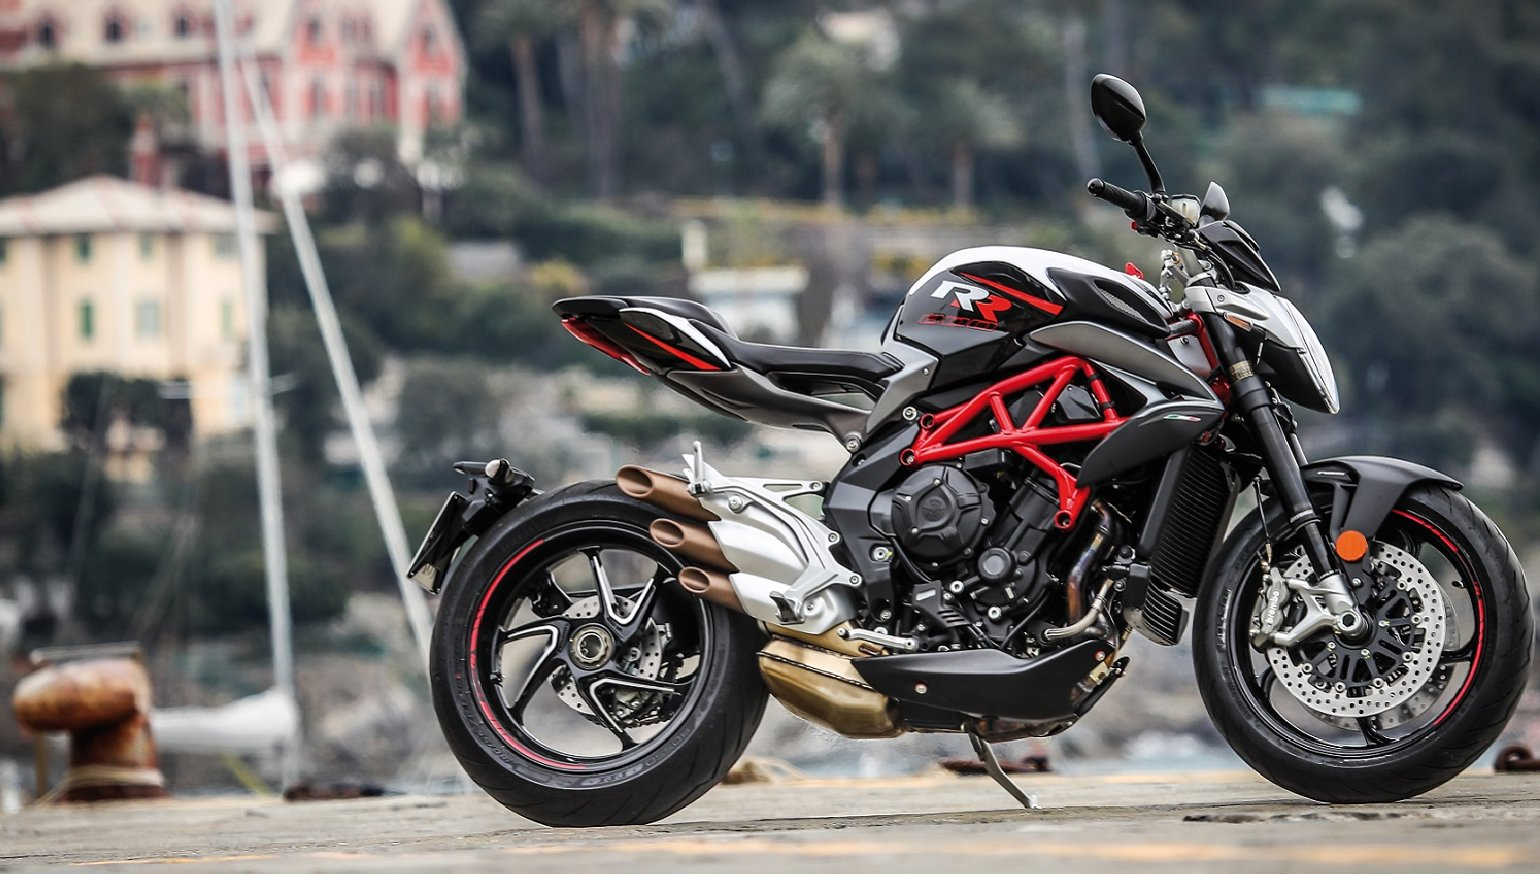 2018 mv agusta brutale 800 rr first ride review revzilla. Black Bedroom Furniture Sets. Home Design Ideas